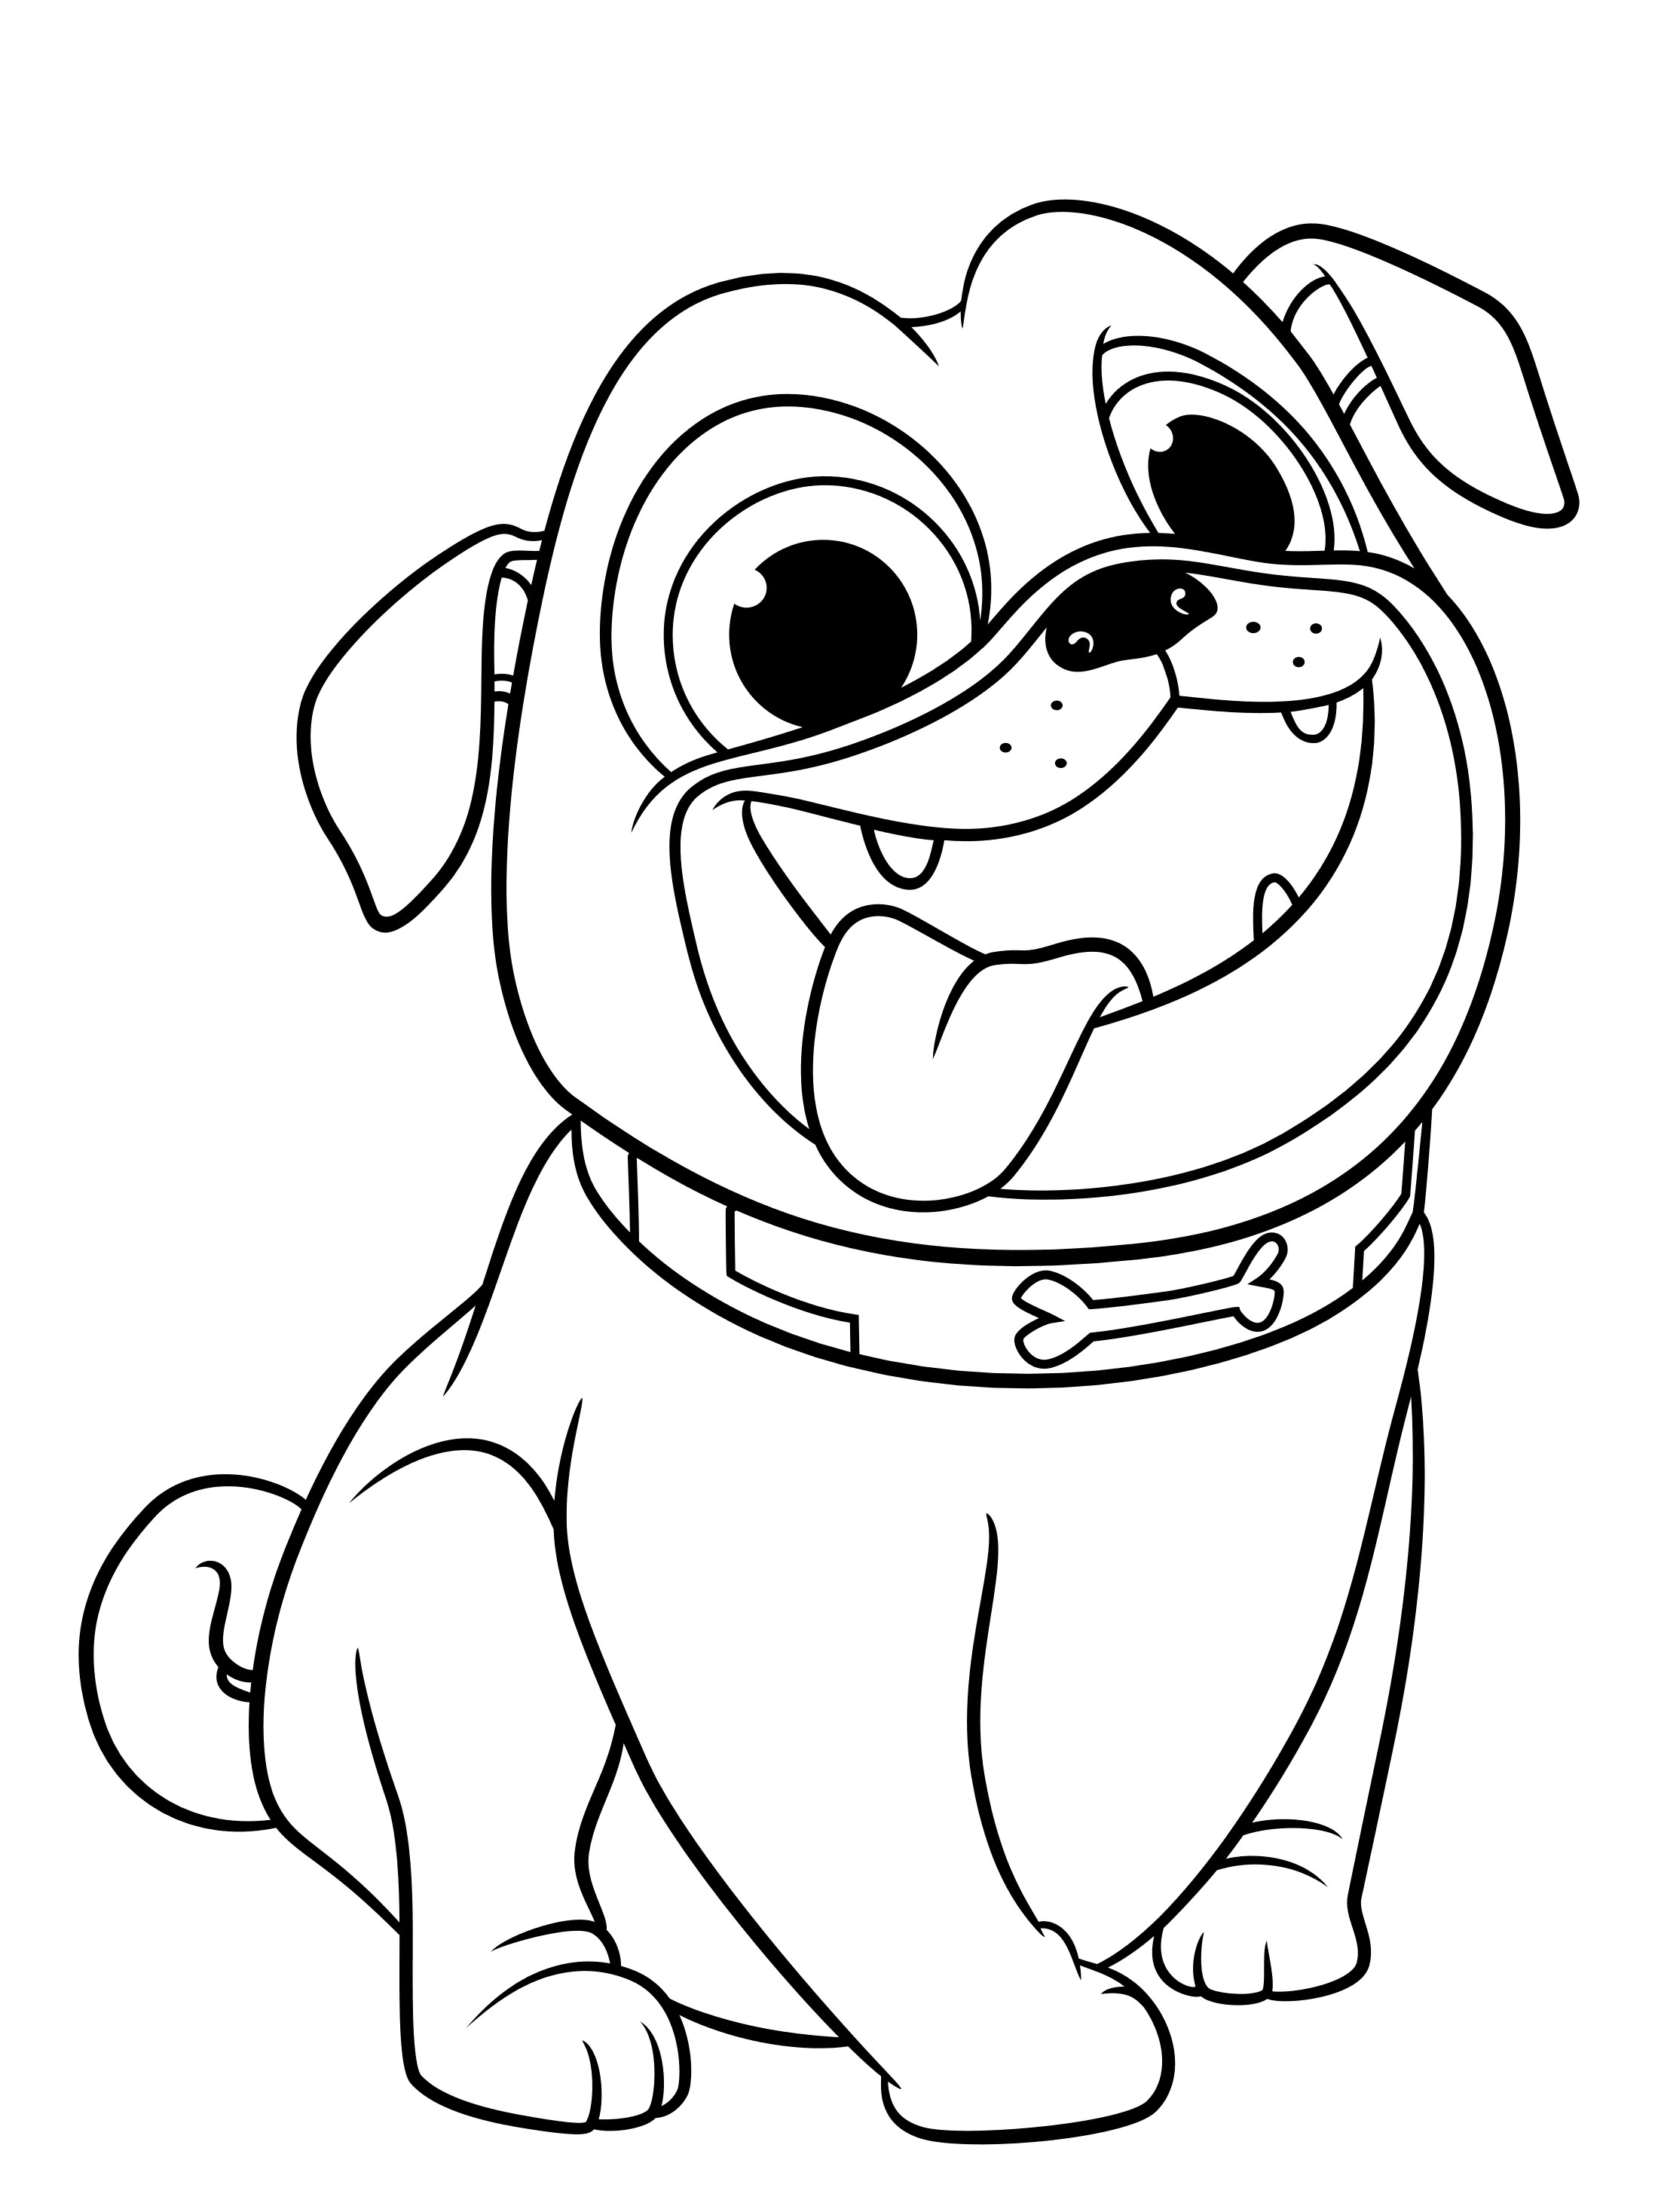 pug puppy coloring pages pug coloring pages to download and print for free pug coloring pages puppy